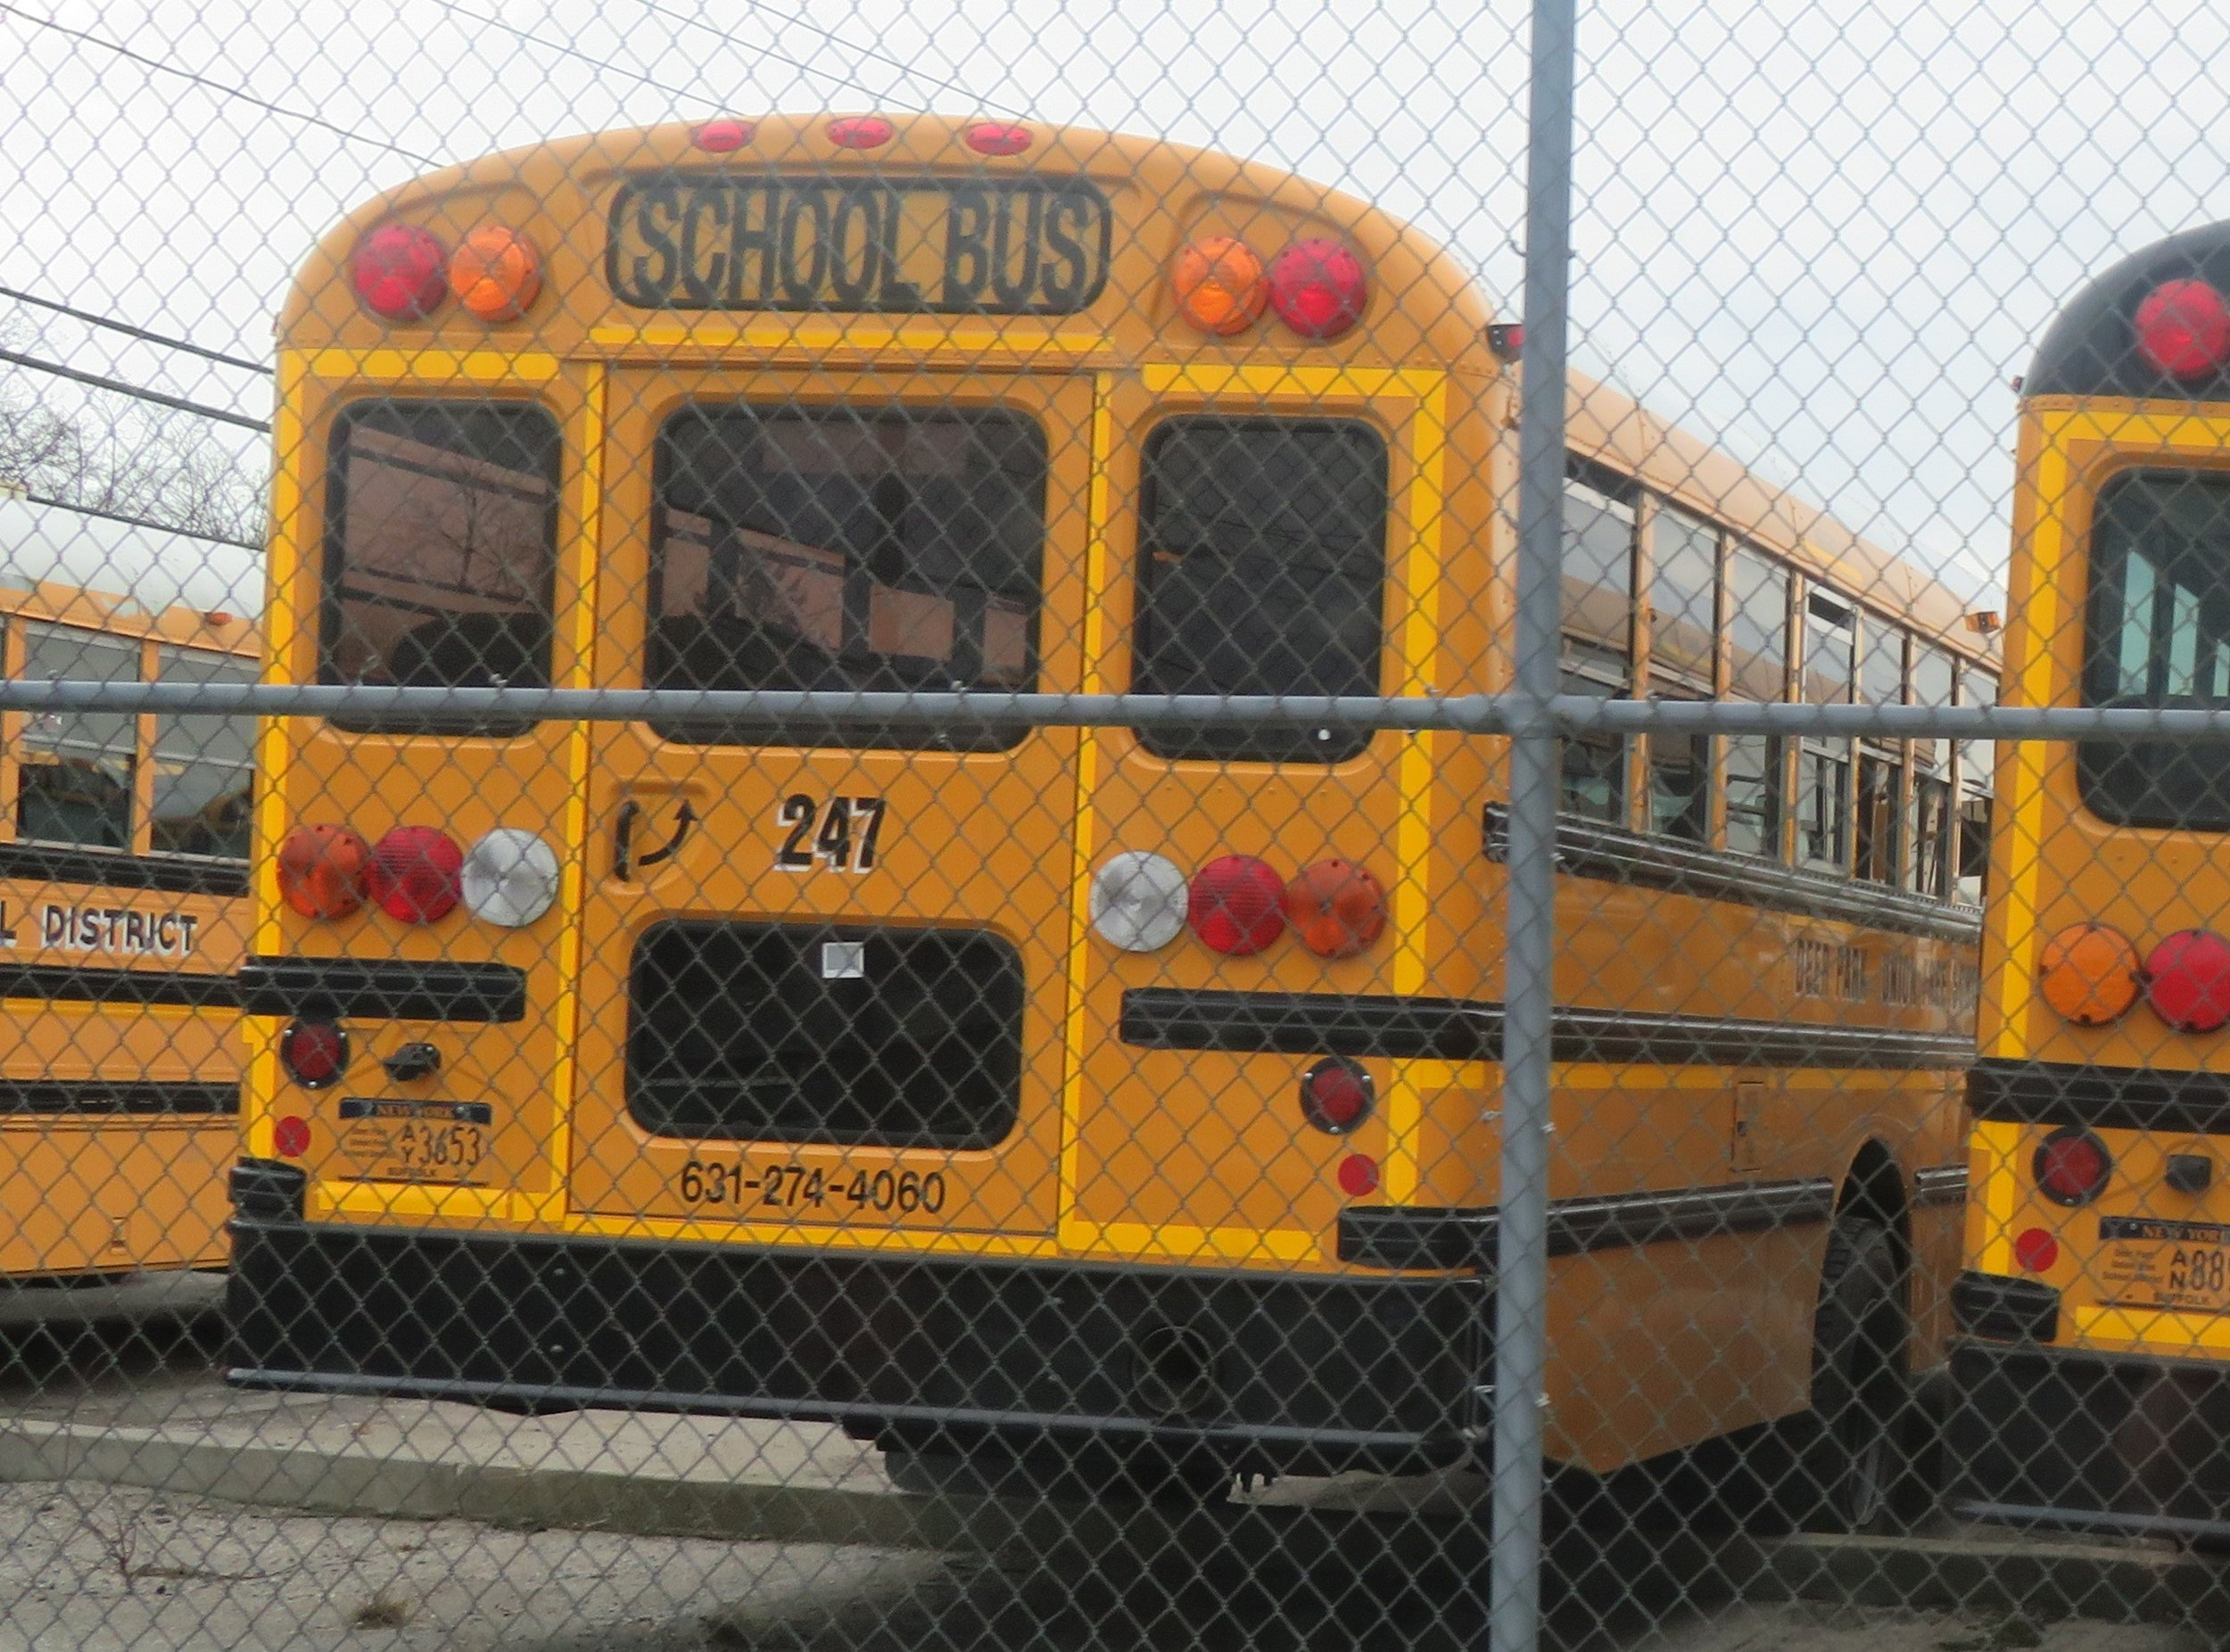 "School bus:  photo credit: ThoseGuys119 <a href=""http://www.flickr.com/photos/62048854@N08/33662445626"">Deer Park UFSD #247</a> via <a href=""http://photopin.com"">photopin</a> <a href=""https://creativecommons.org/licenses/by/2.0/"">(license)</a>"